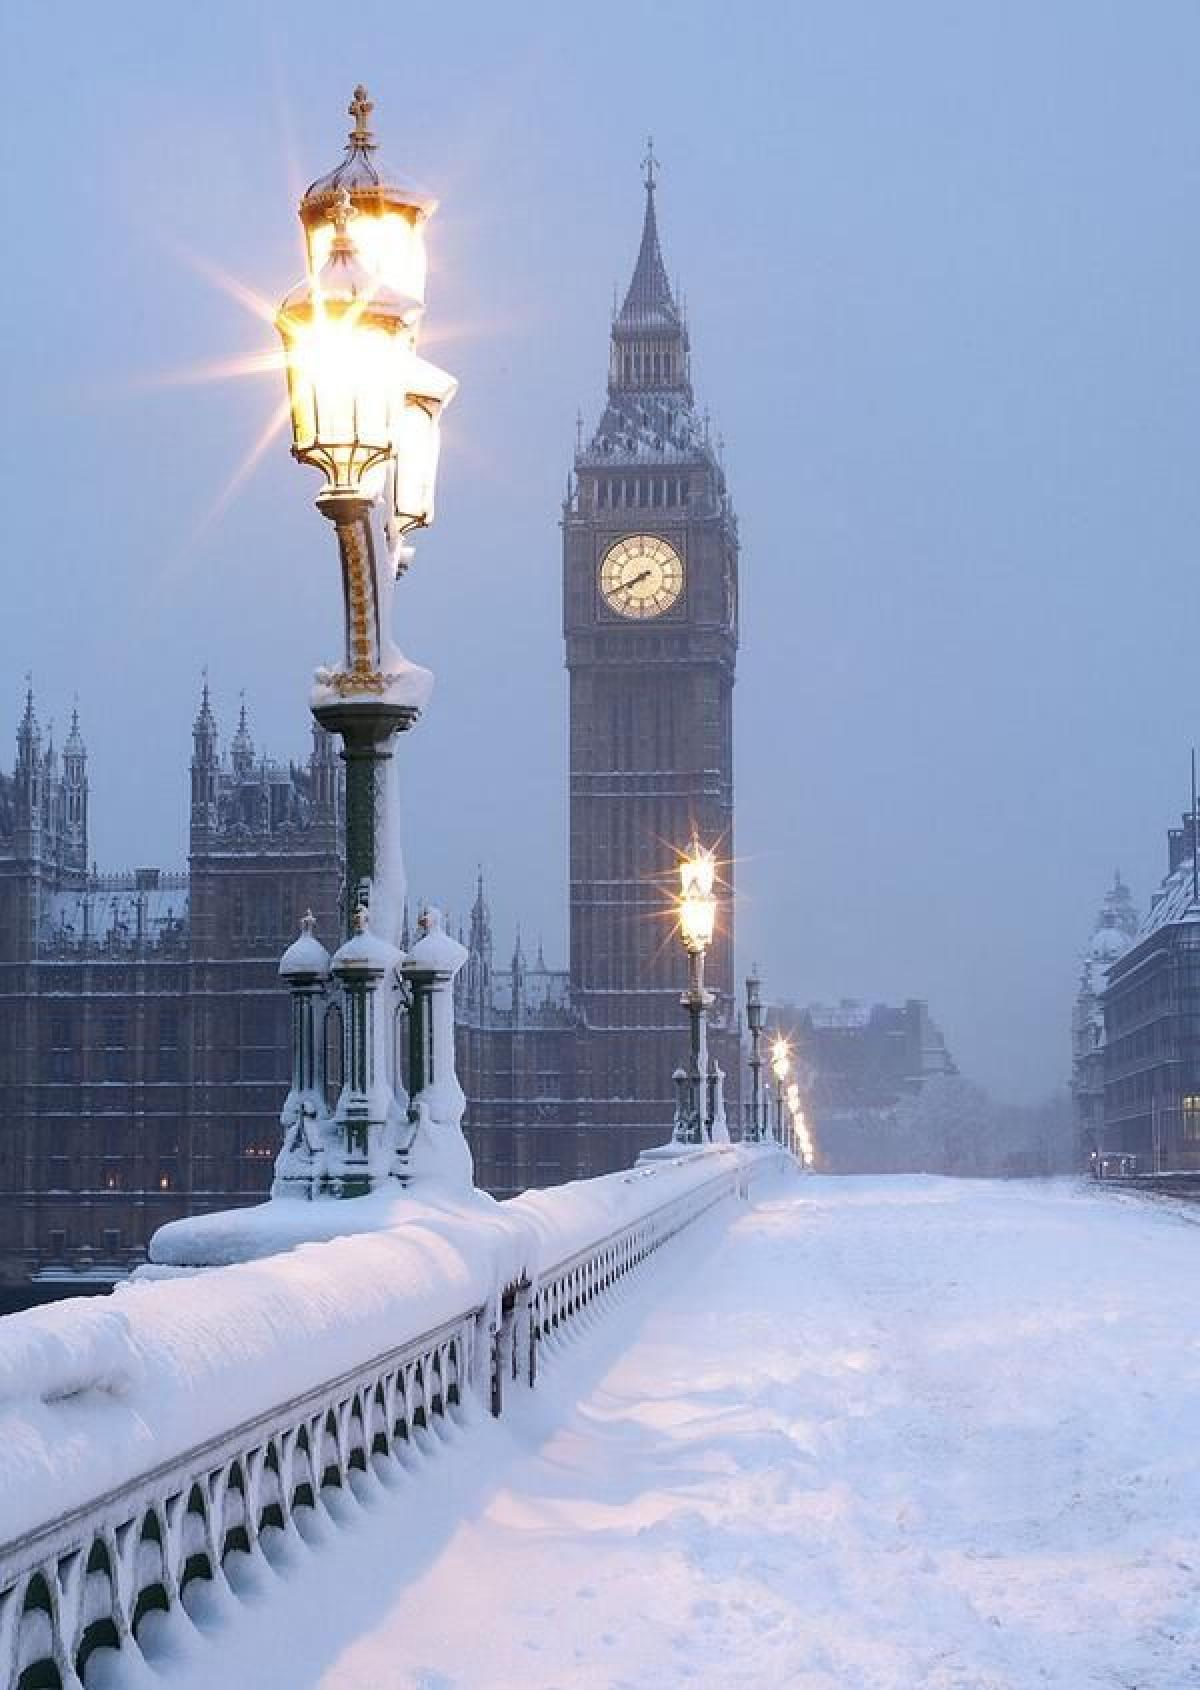 winter london bigben bridge snow